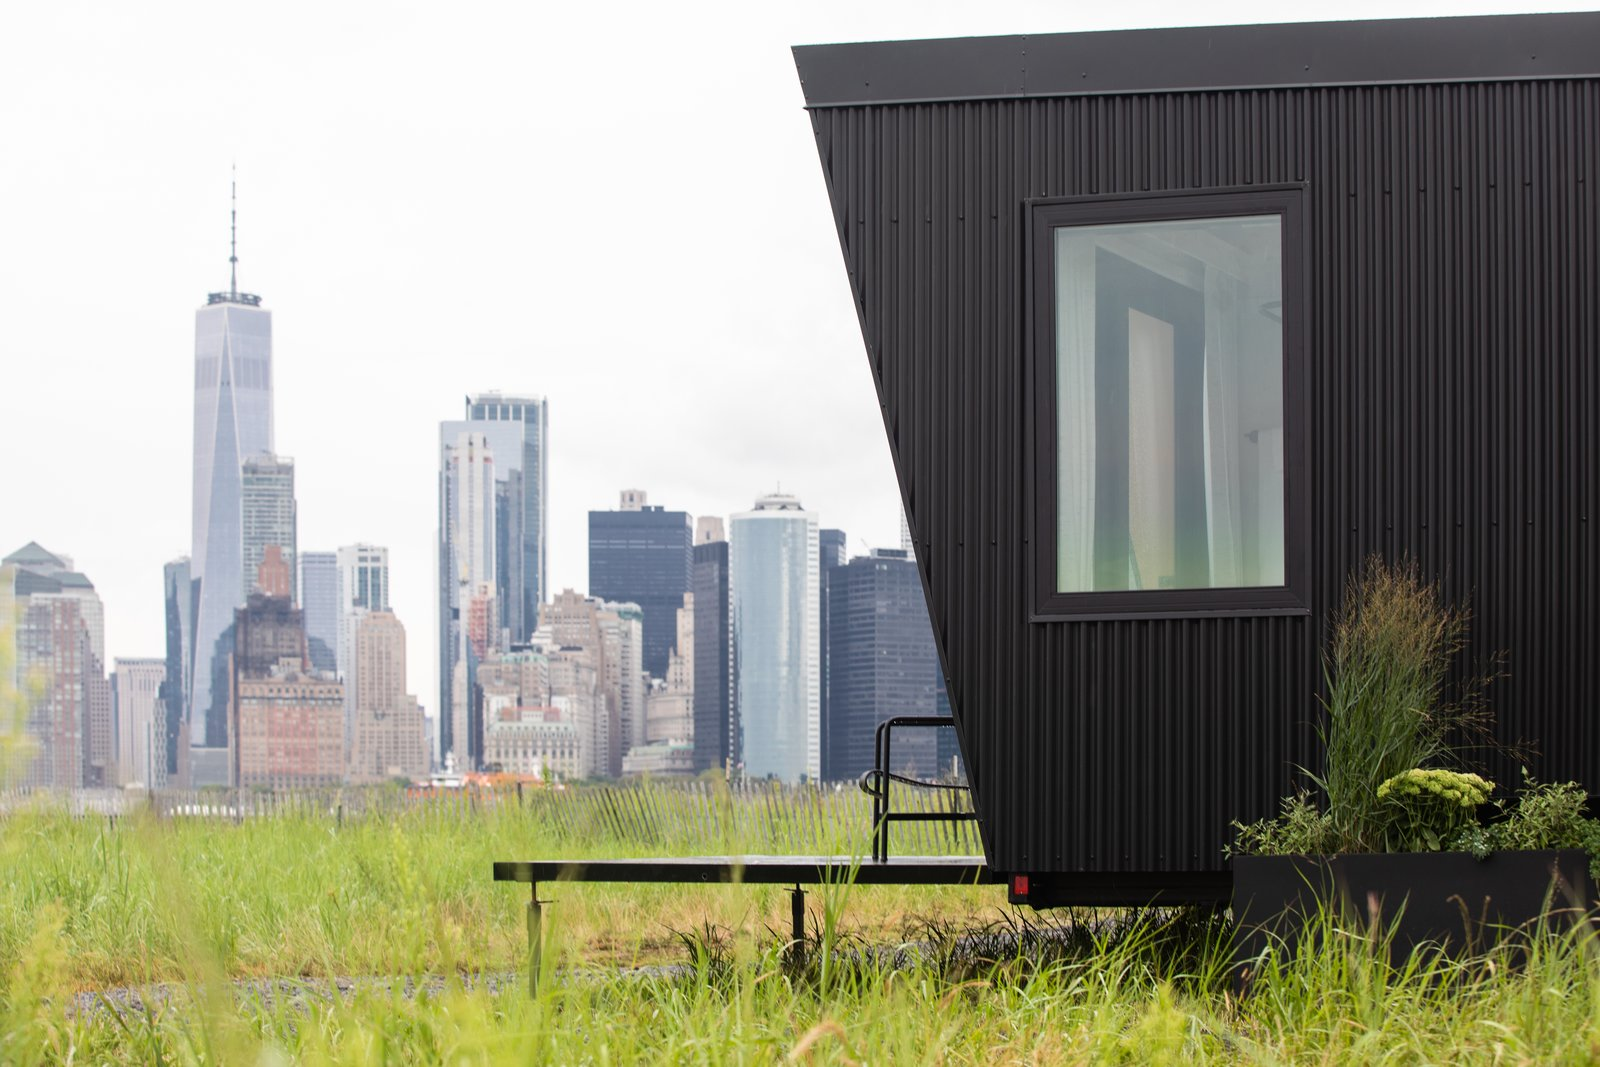 Outlook Shelter from Spend the Night in a Swank, Modular Hotel Room on Governors Island